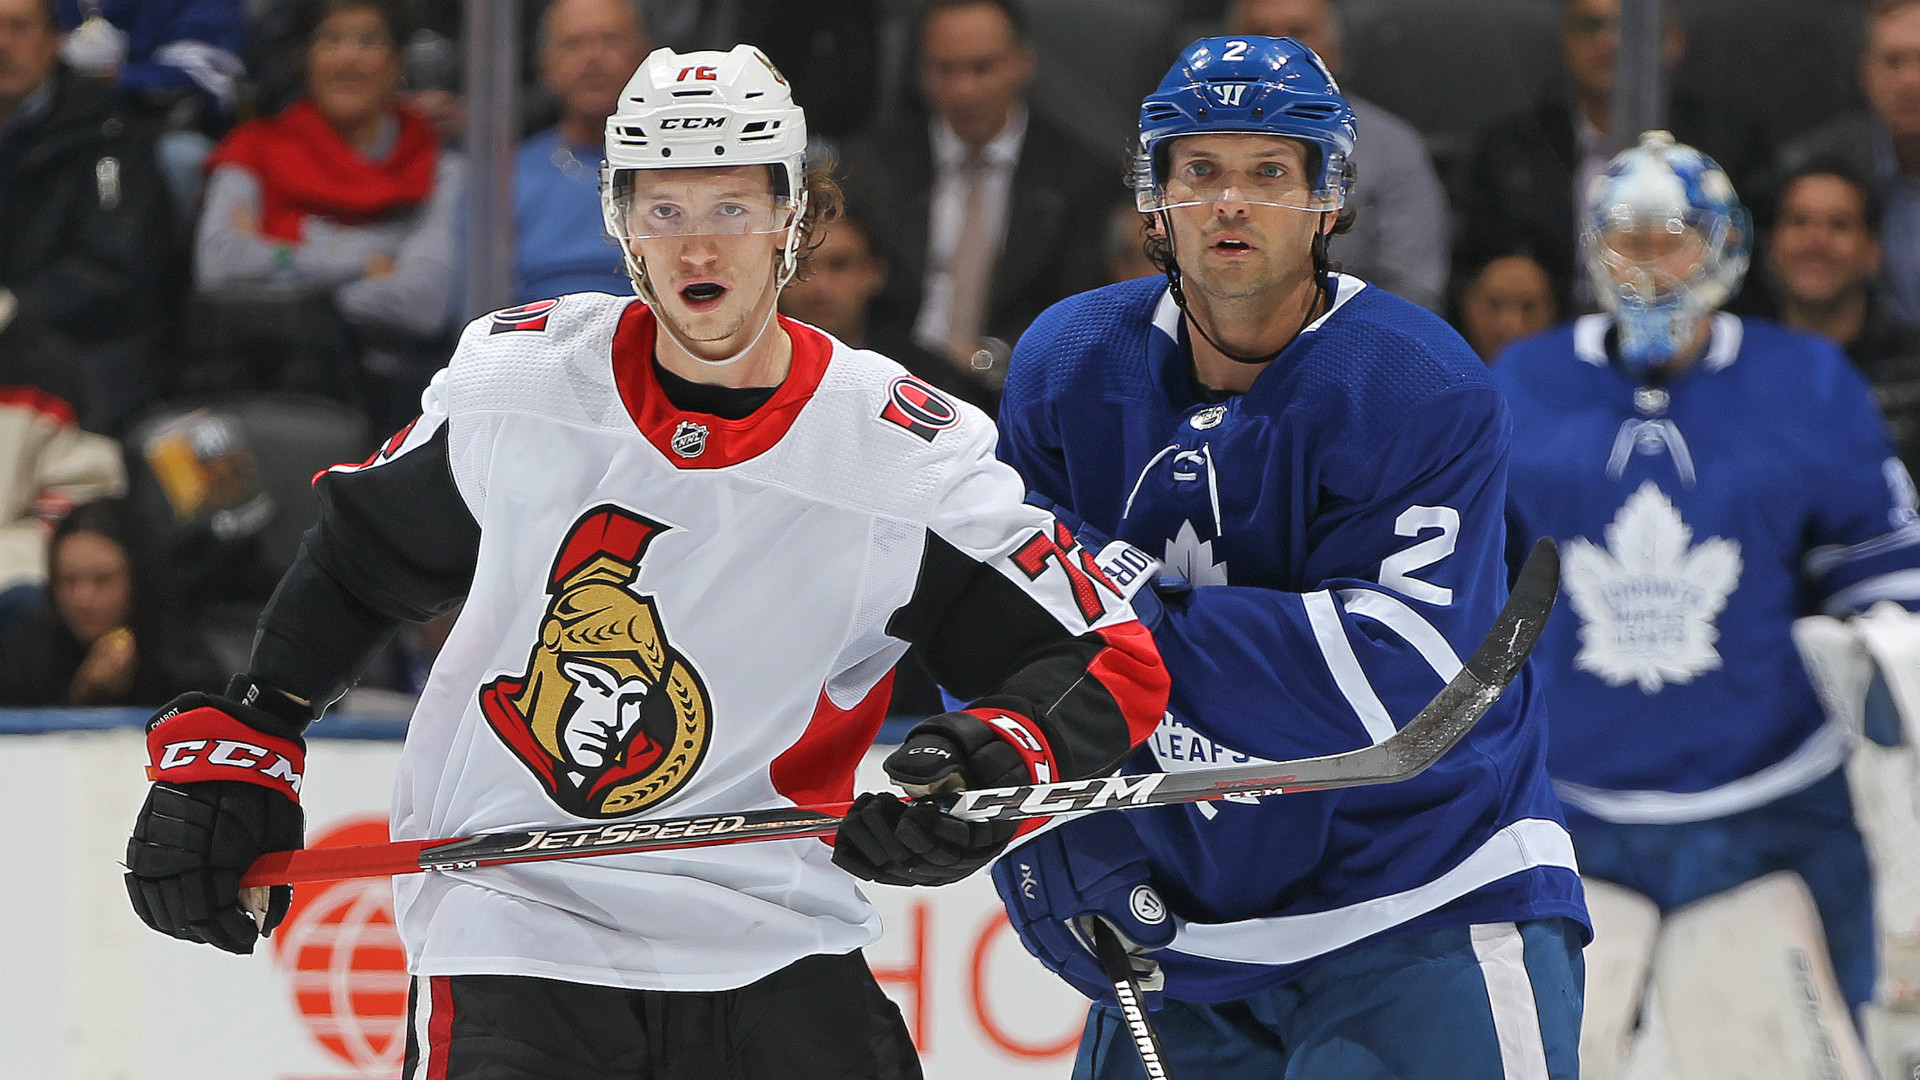 Potentially goal-starved Senators pledge to tighten up defensively